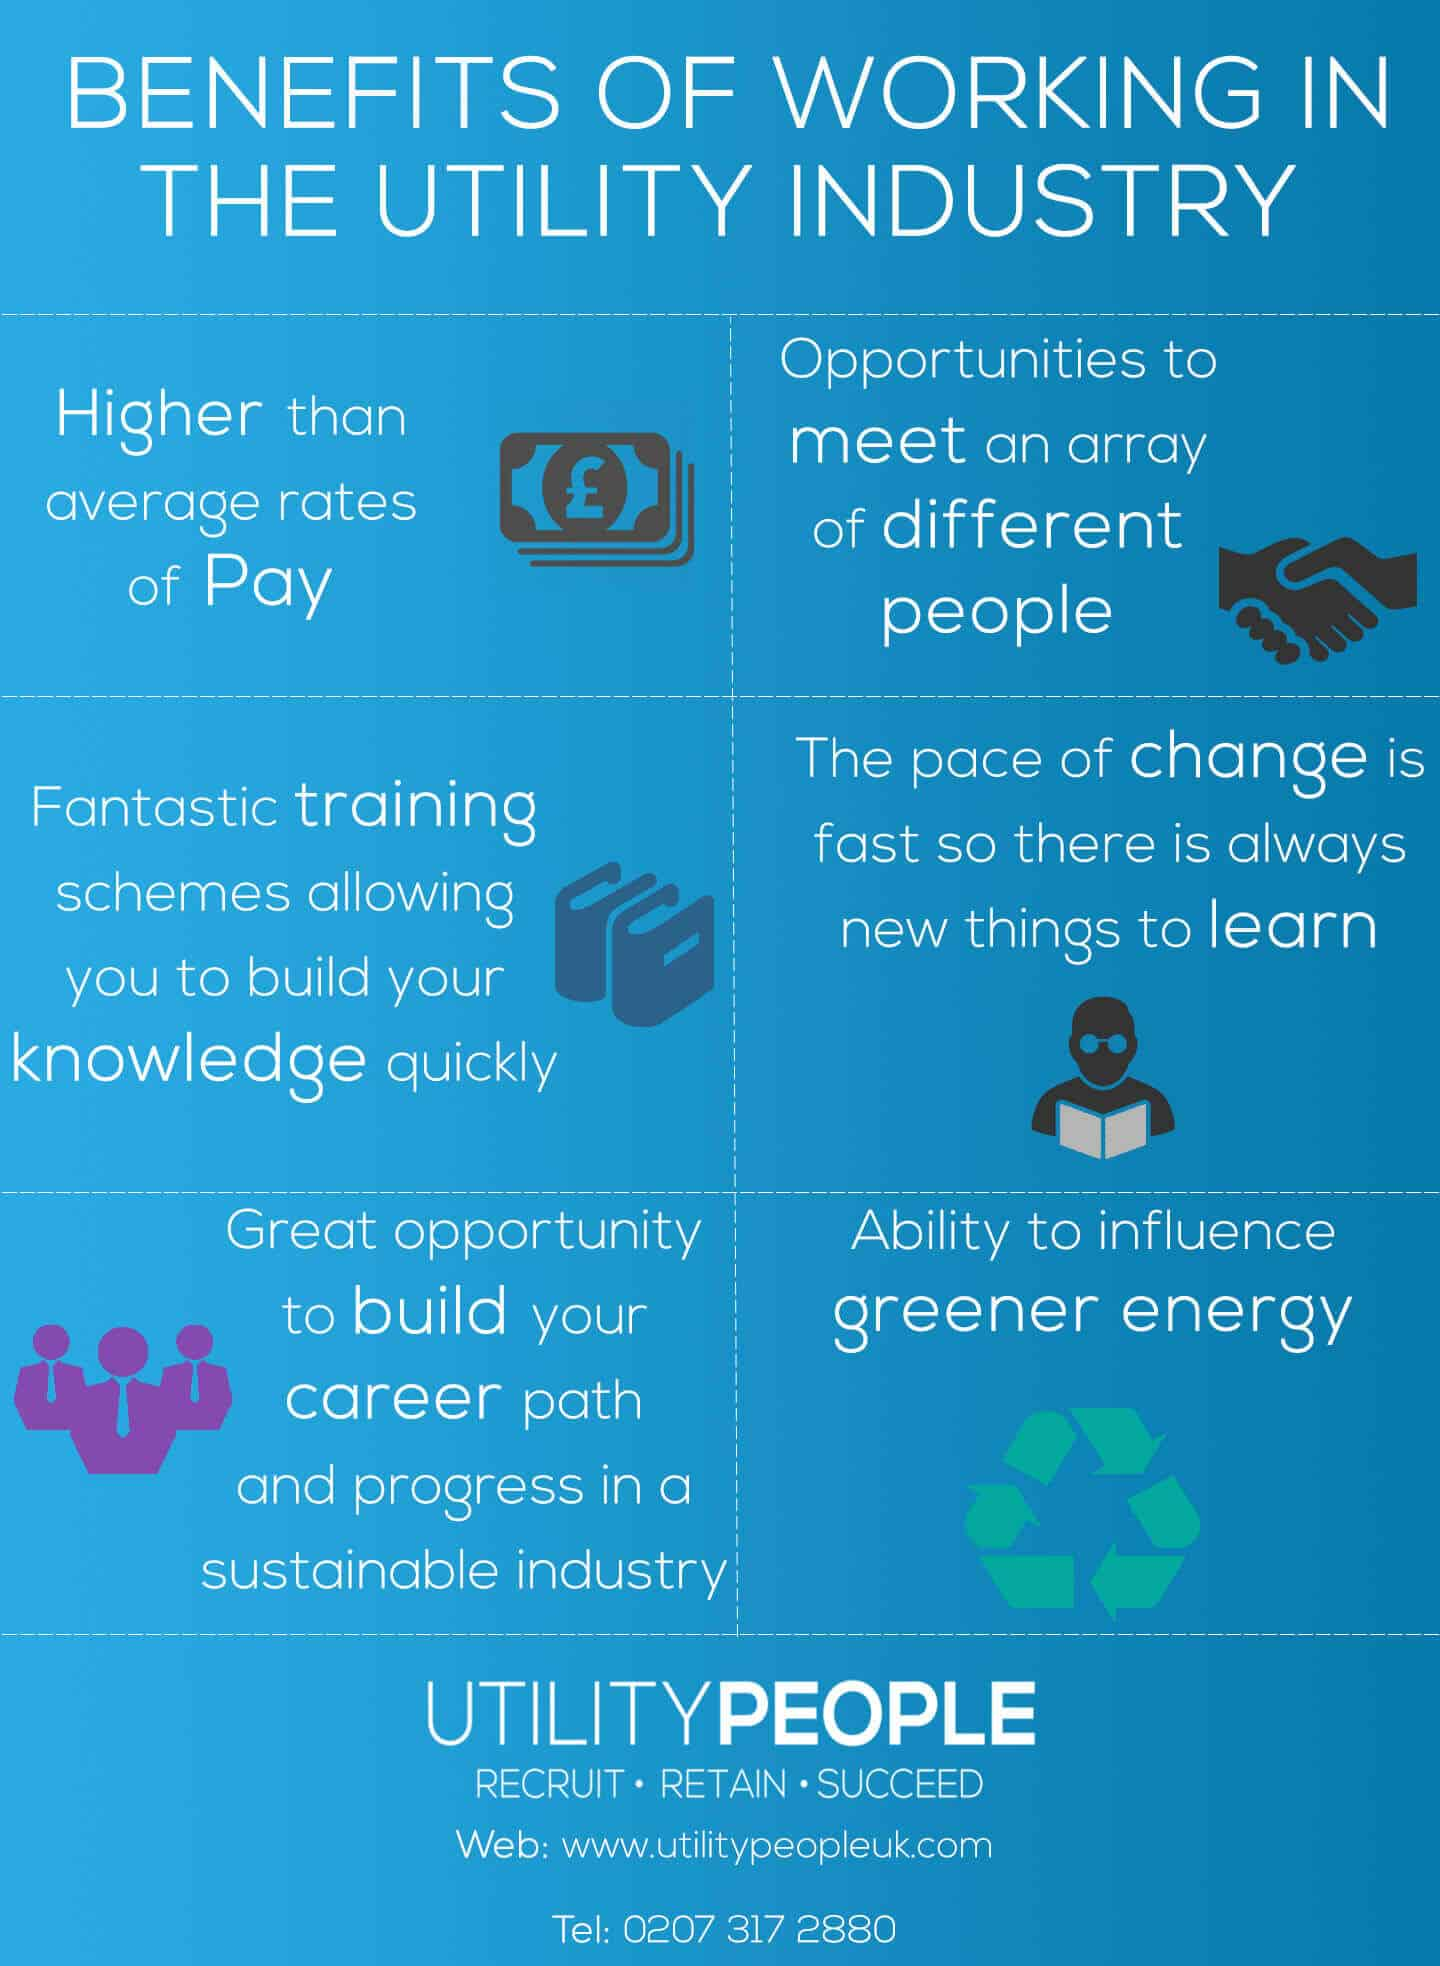 Benefits of working in the Utility Industry - Utility People